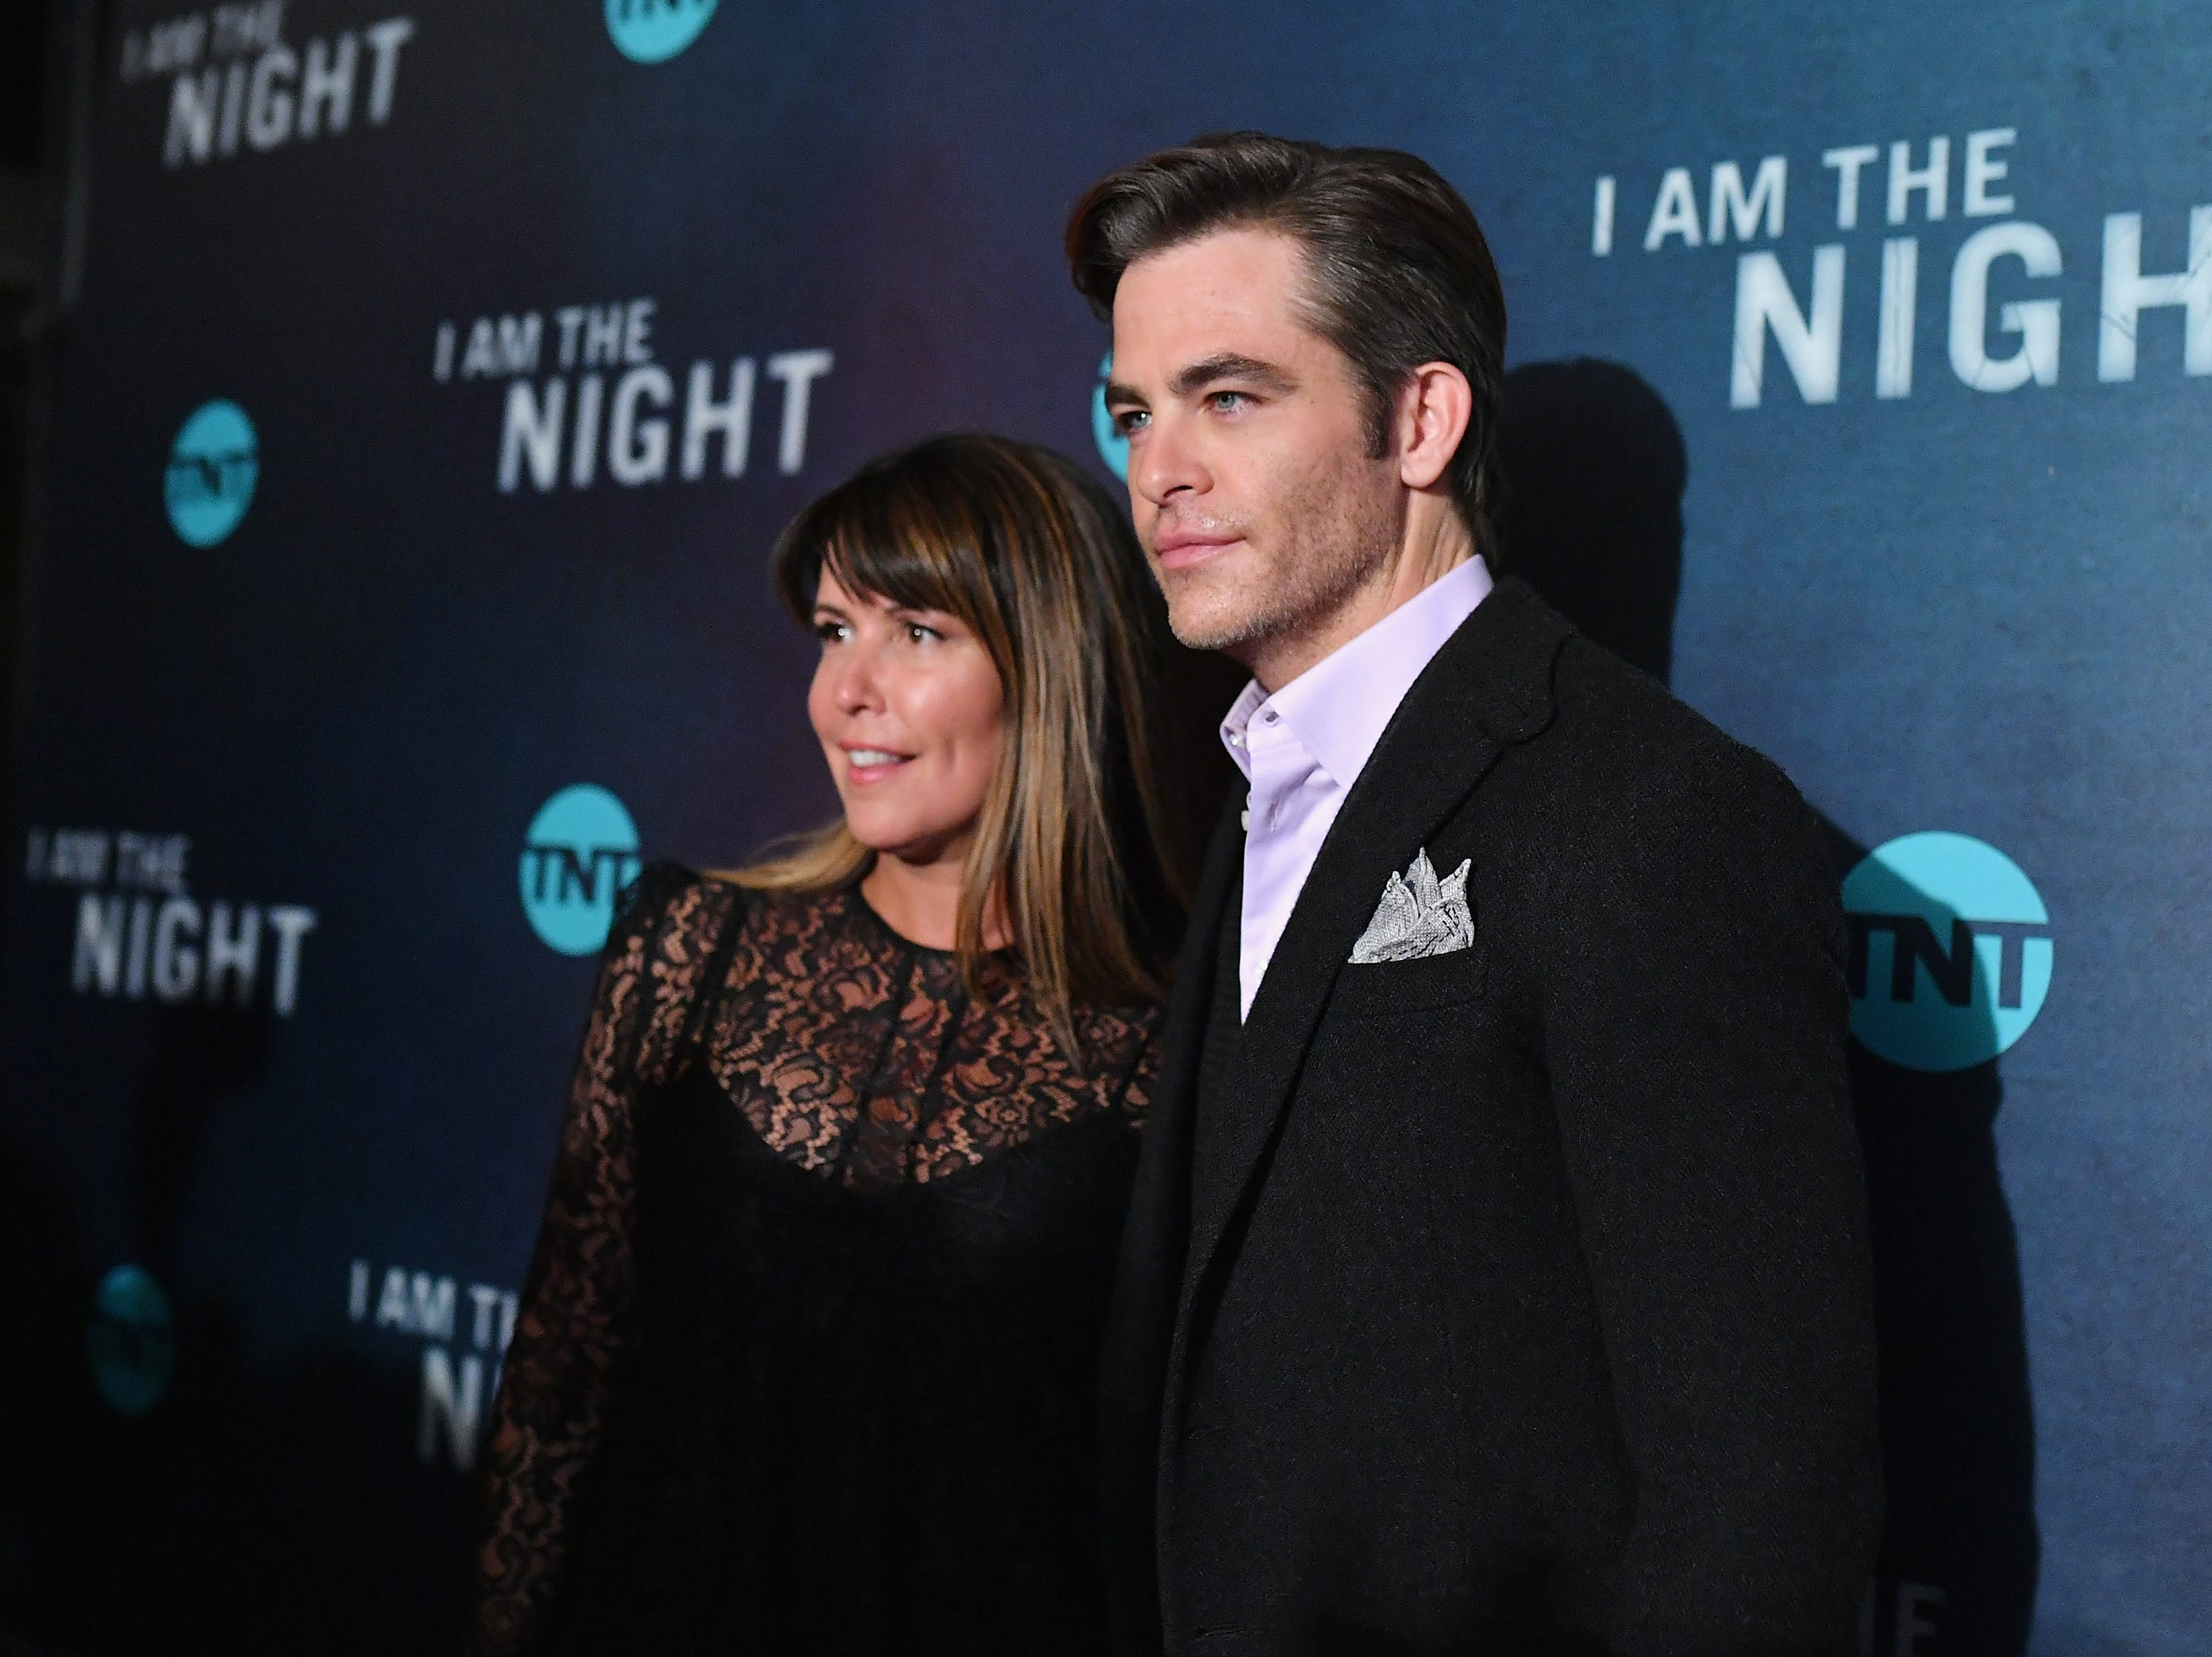 """NEW YORK, NEW YORK - JANUARY 22: Patty Jenkins (L) and Chris Pine attend the """"I Am the Night"""" Premiere at Metrograph on January 22, 2019 in New York City. 484171  (Photo by Mike Coppola/Getty Images for TNT) ORG XMIT: 775244601 ORIG FILE ID: 1098132876"""